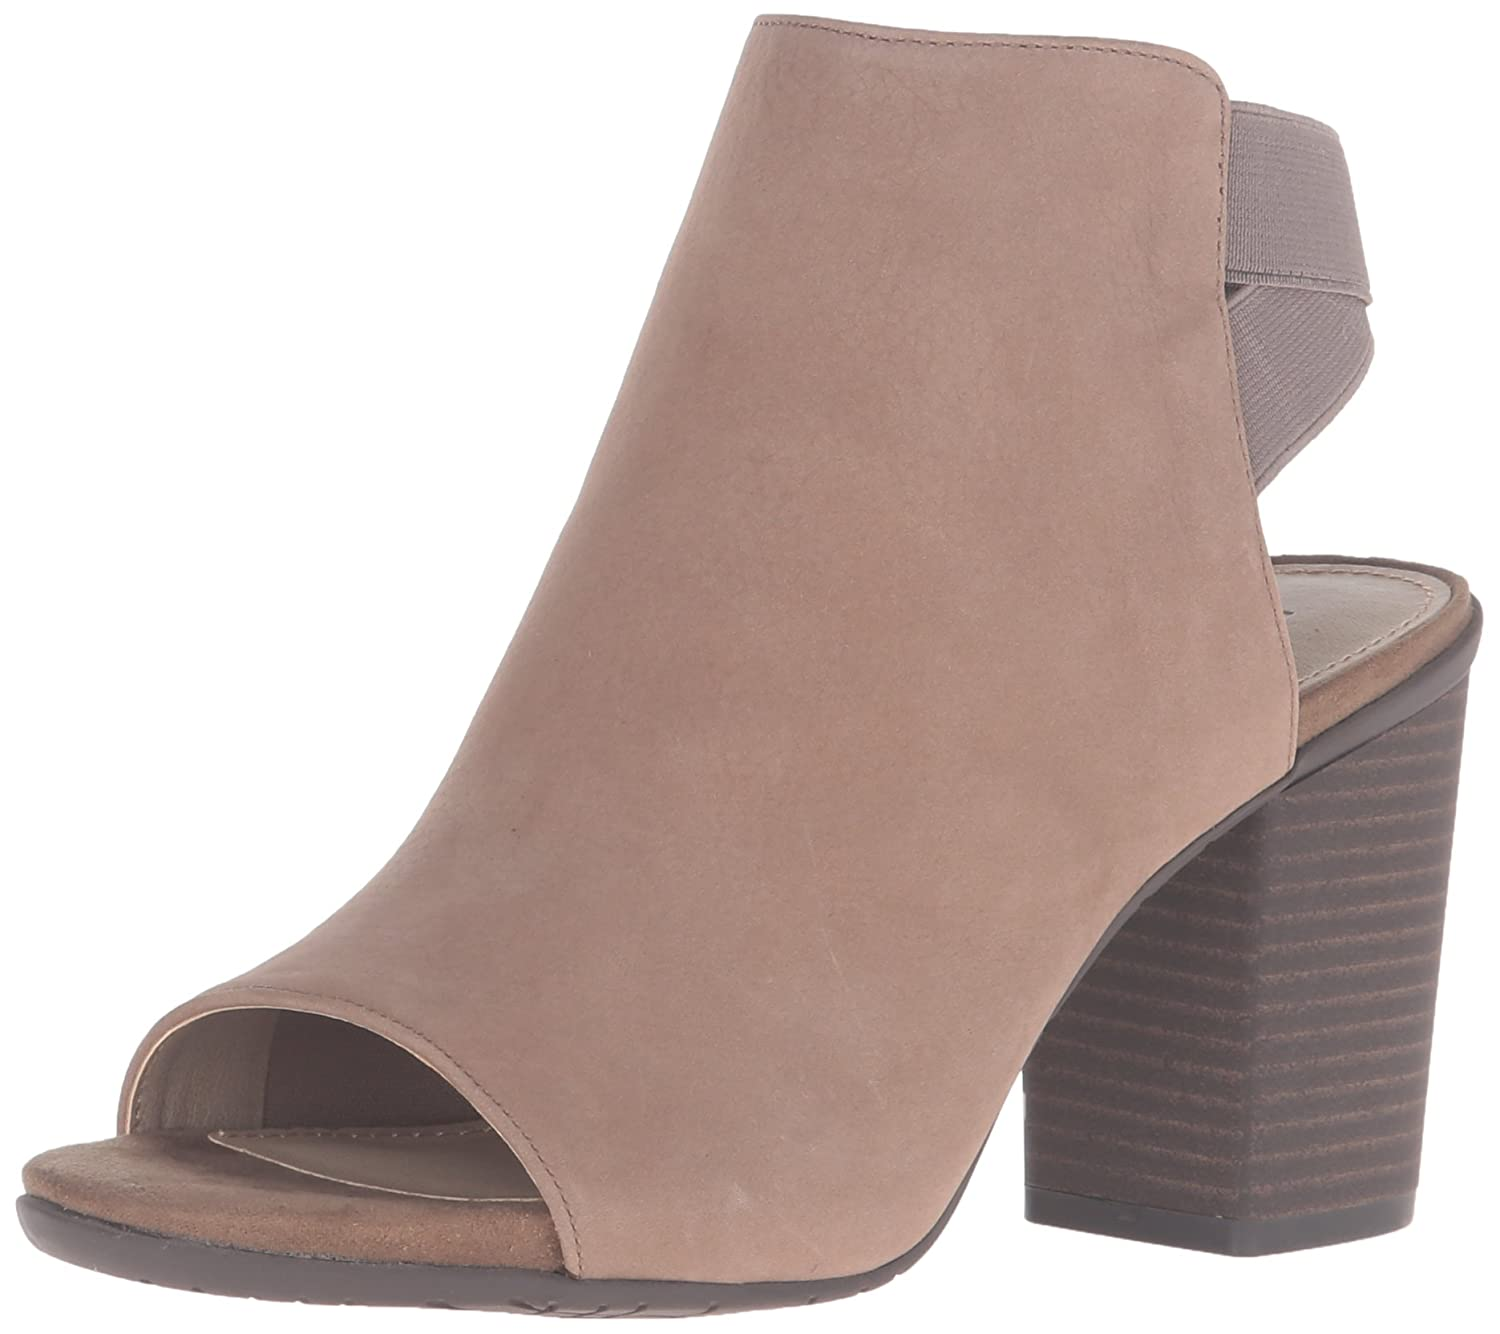 Kenneth Cole REACTION Women's Fridah Fly Ankle Bootie B01COKUVA2 6 B(M) US|Putty